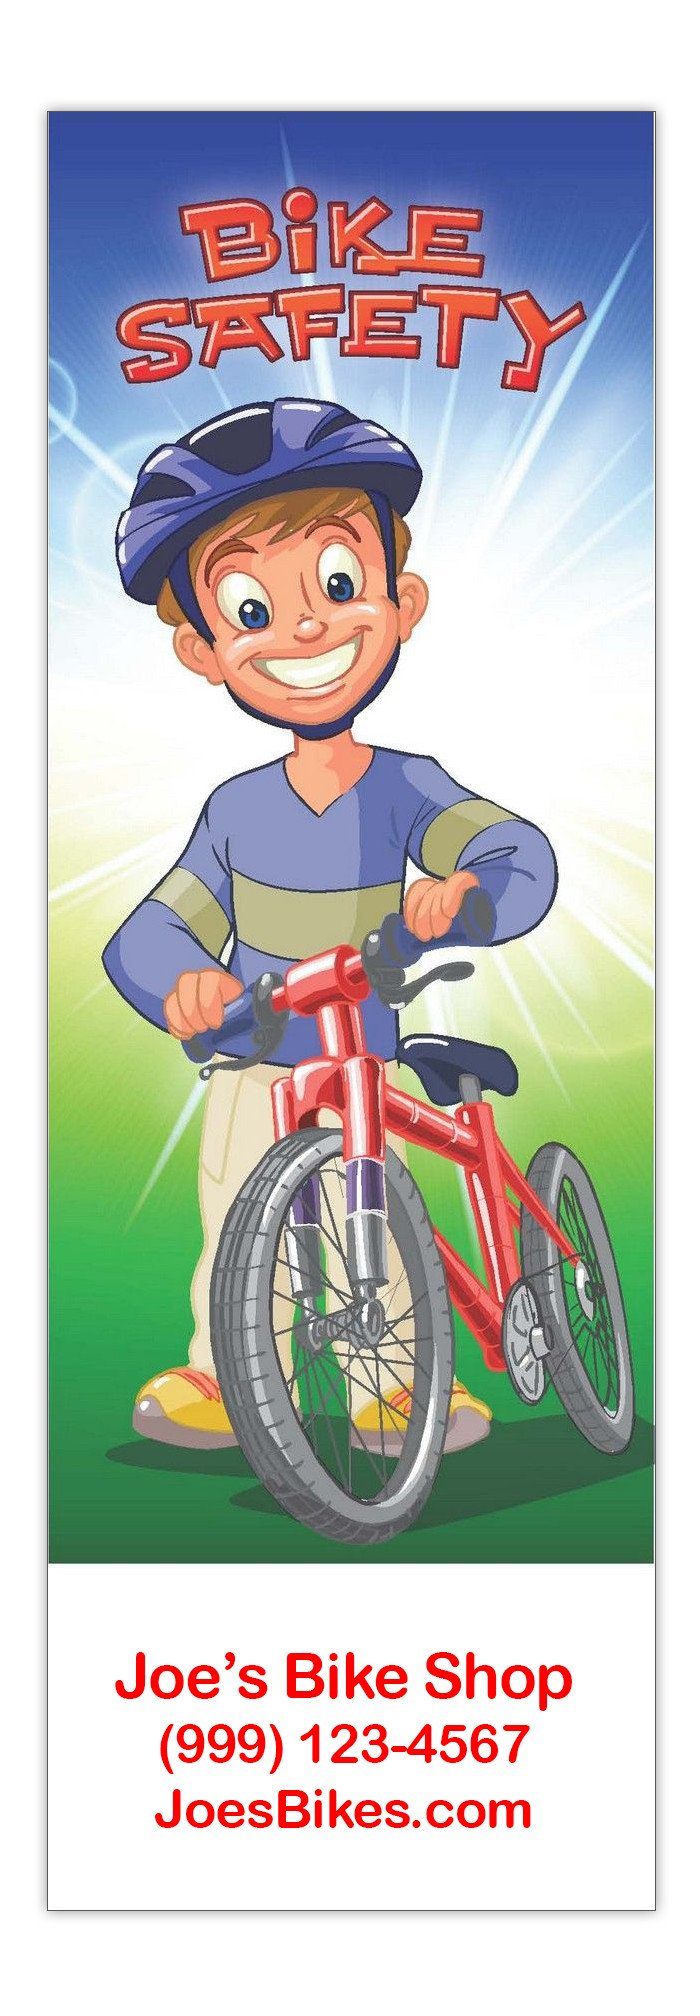 Bike Safety Bookmarks in Bulk (Qty of 250) - Promotional Item - Customize with your Information - Great for Mailings